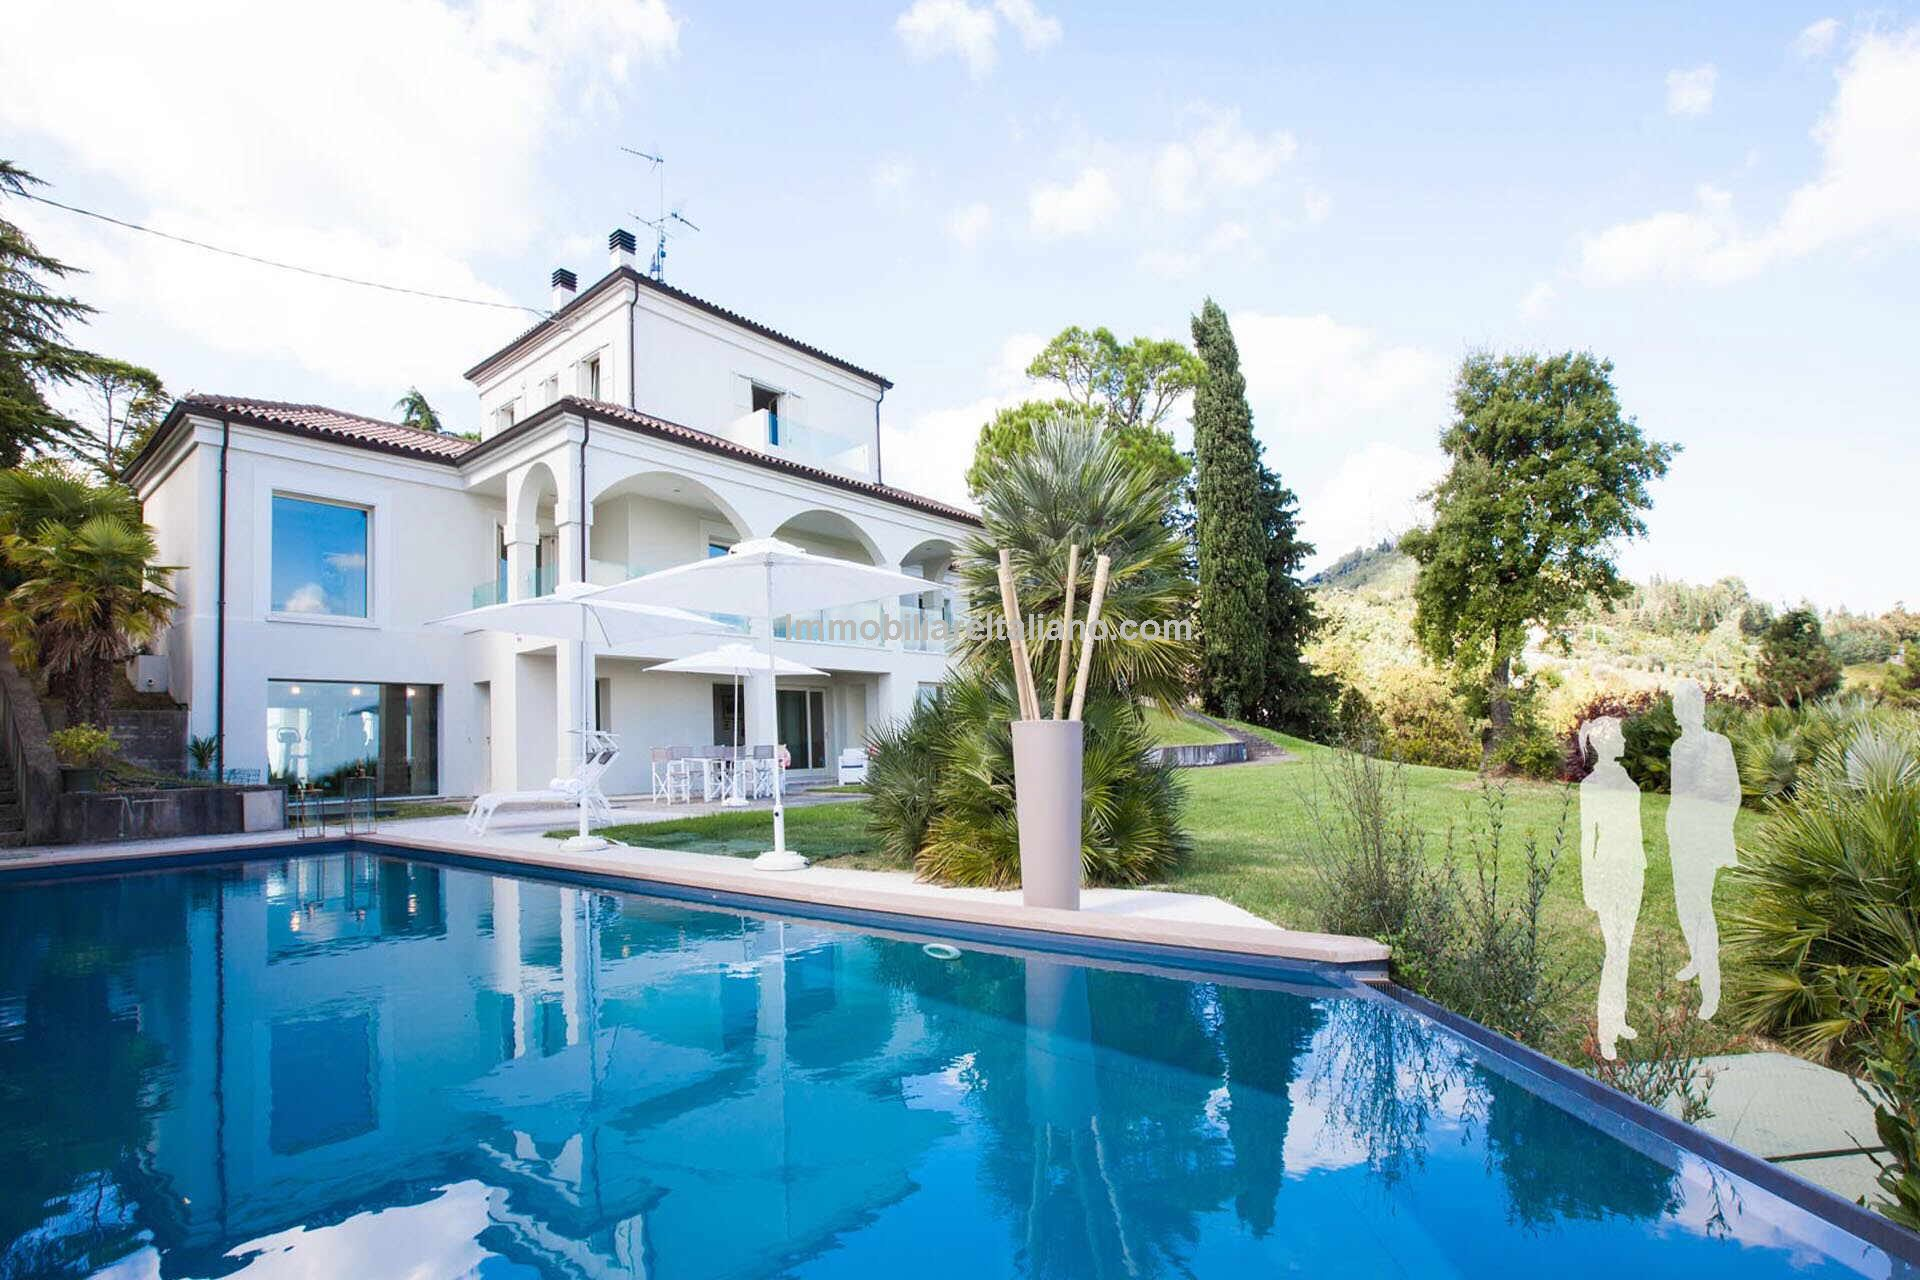 luxury villa for sale with sea view over the Adriatic coast